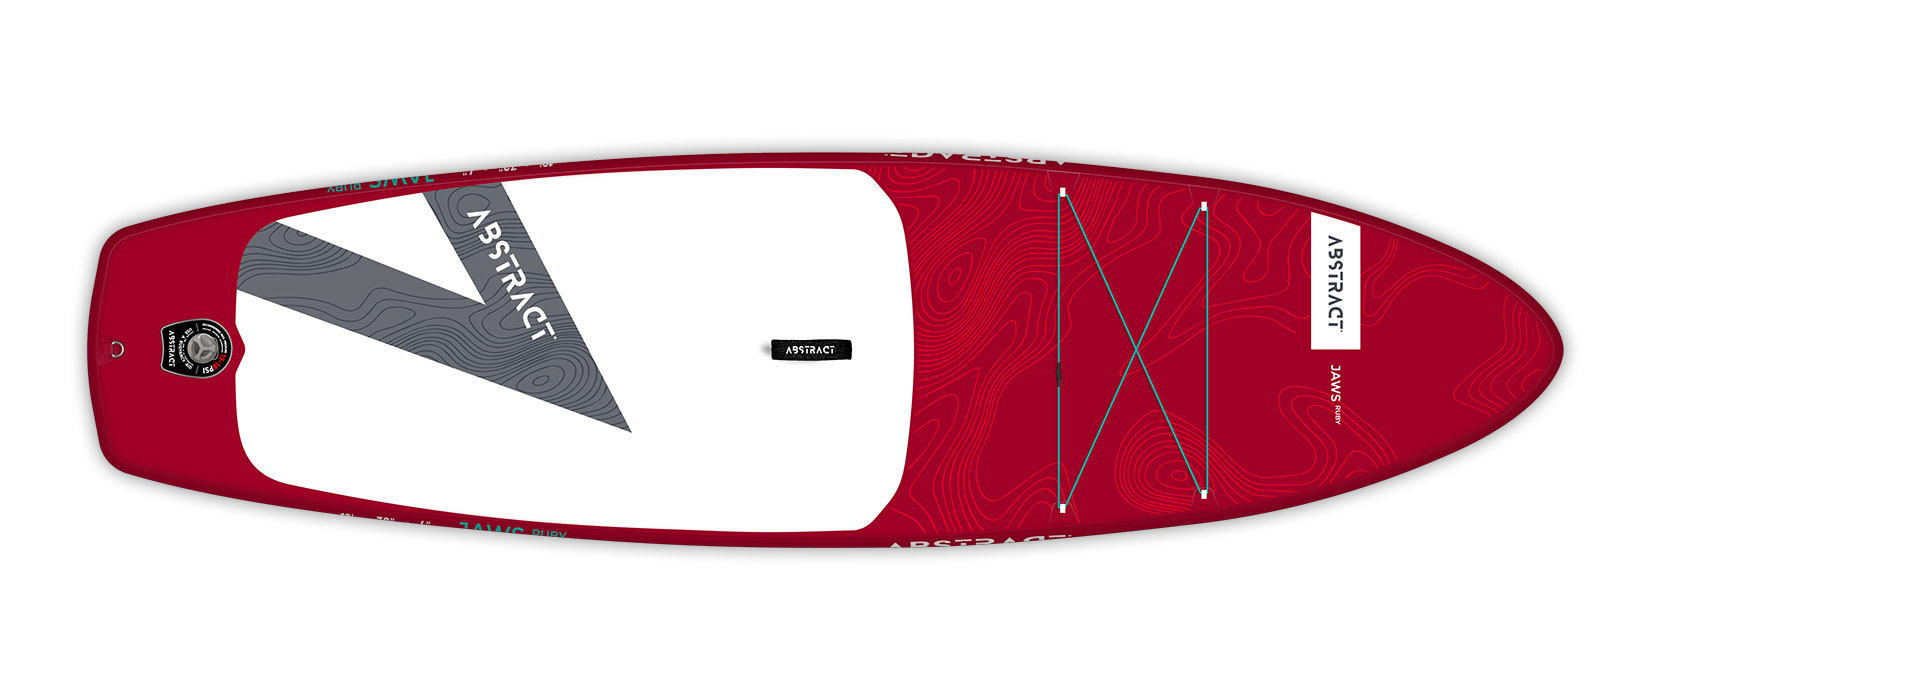 Planche de paddle Board gonflable Jaws Ruby (Rouge) Abstract 2021